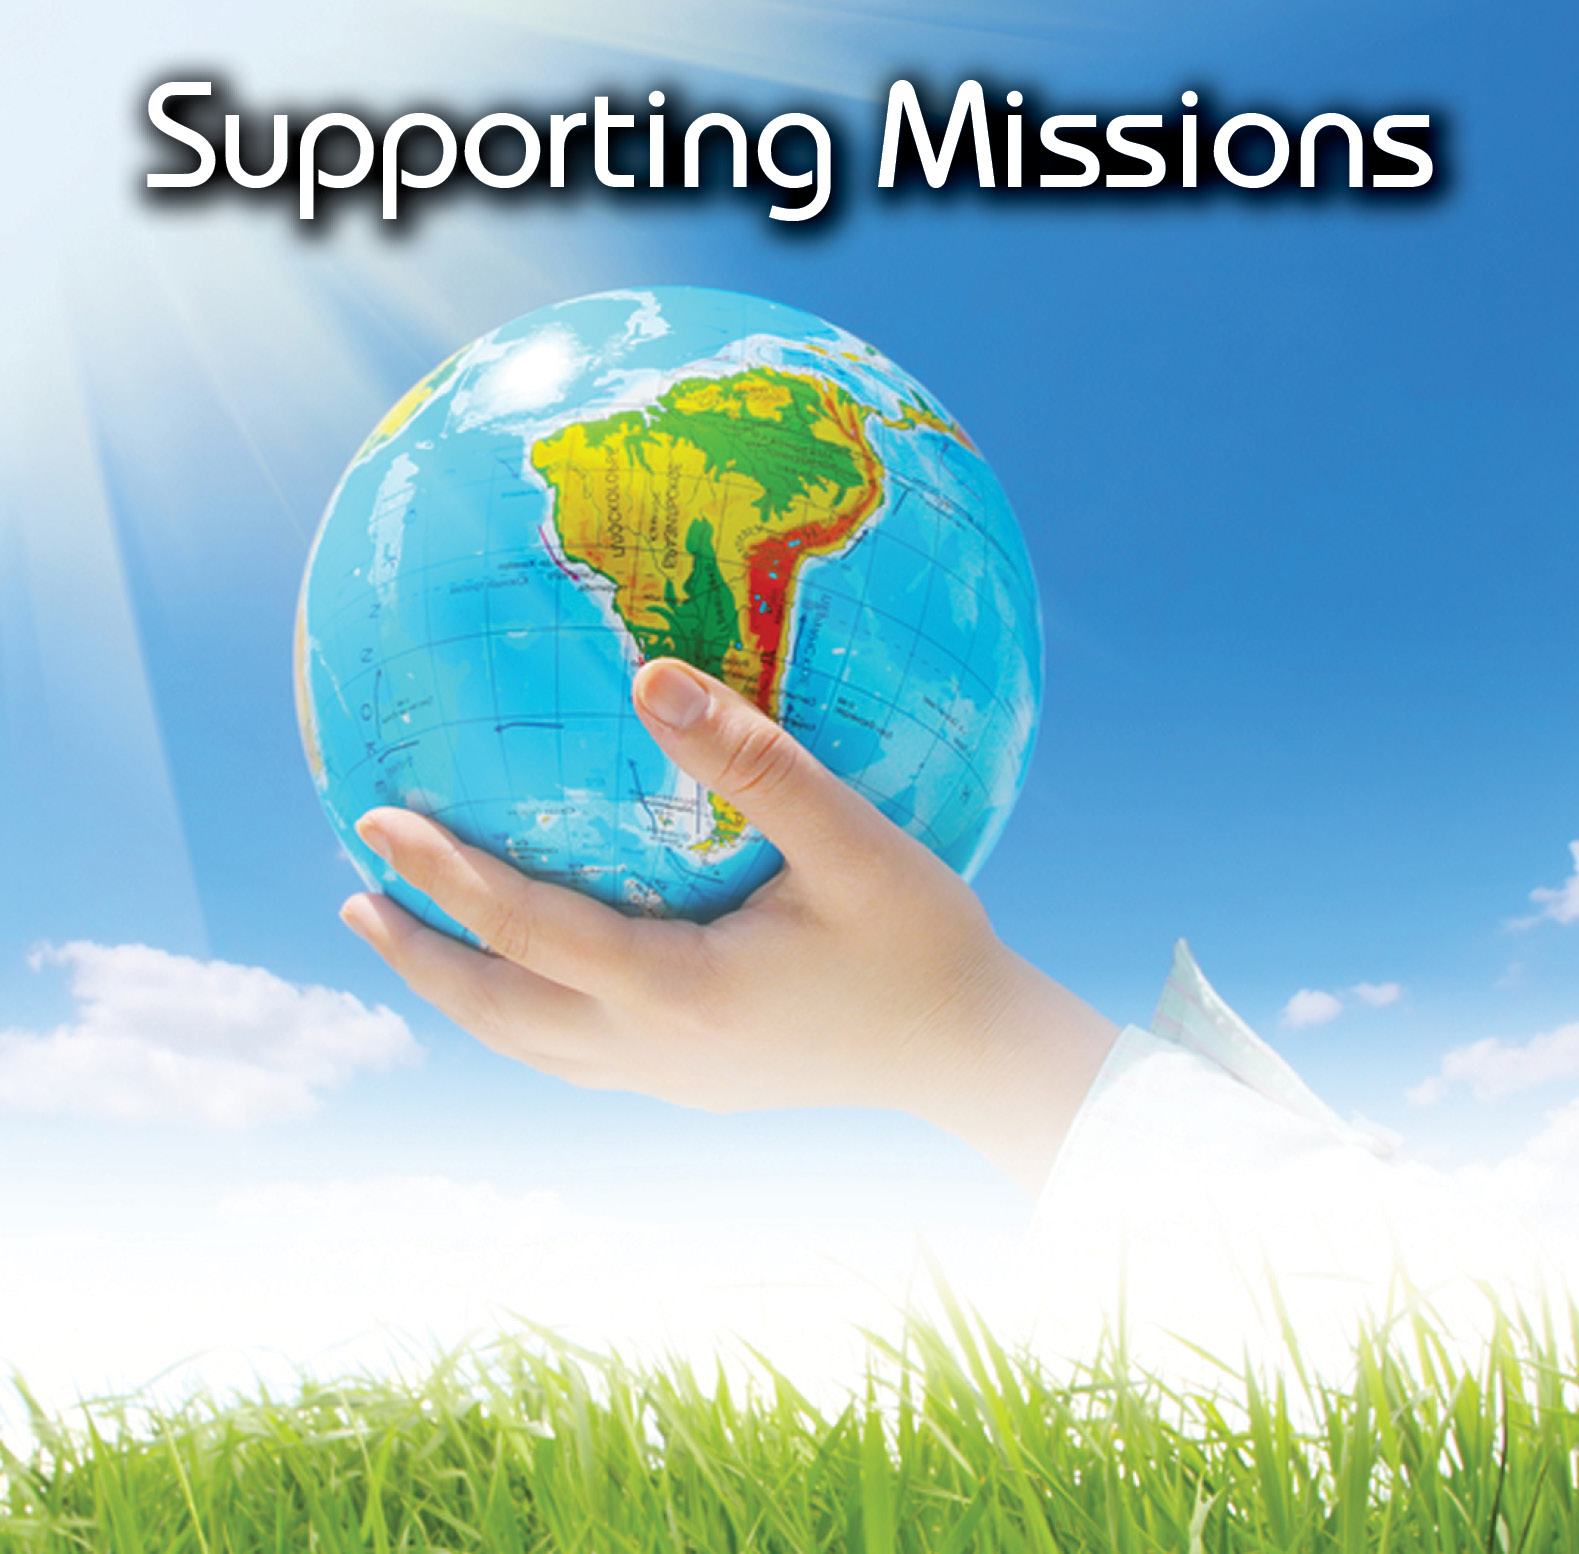 supporting-missions-header.jpg